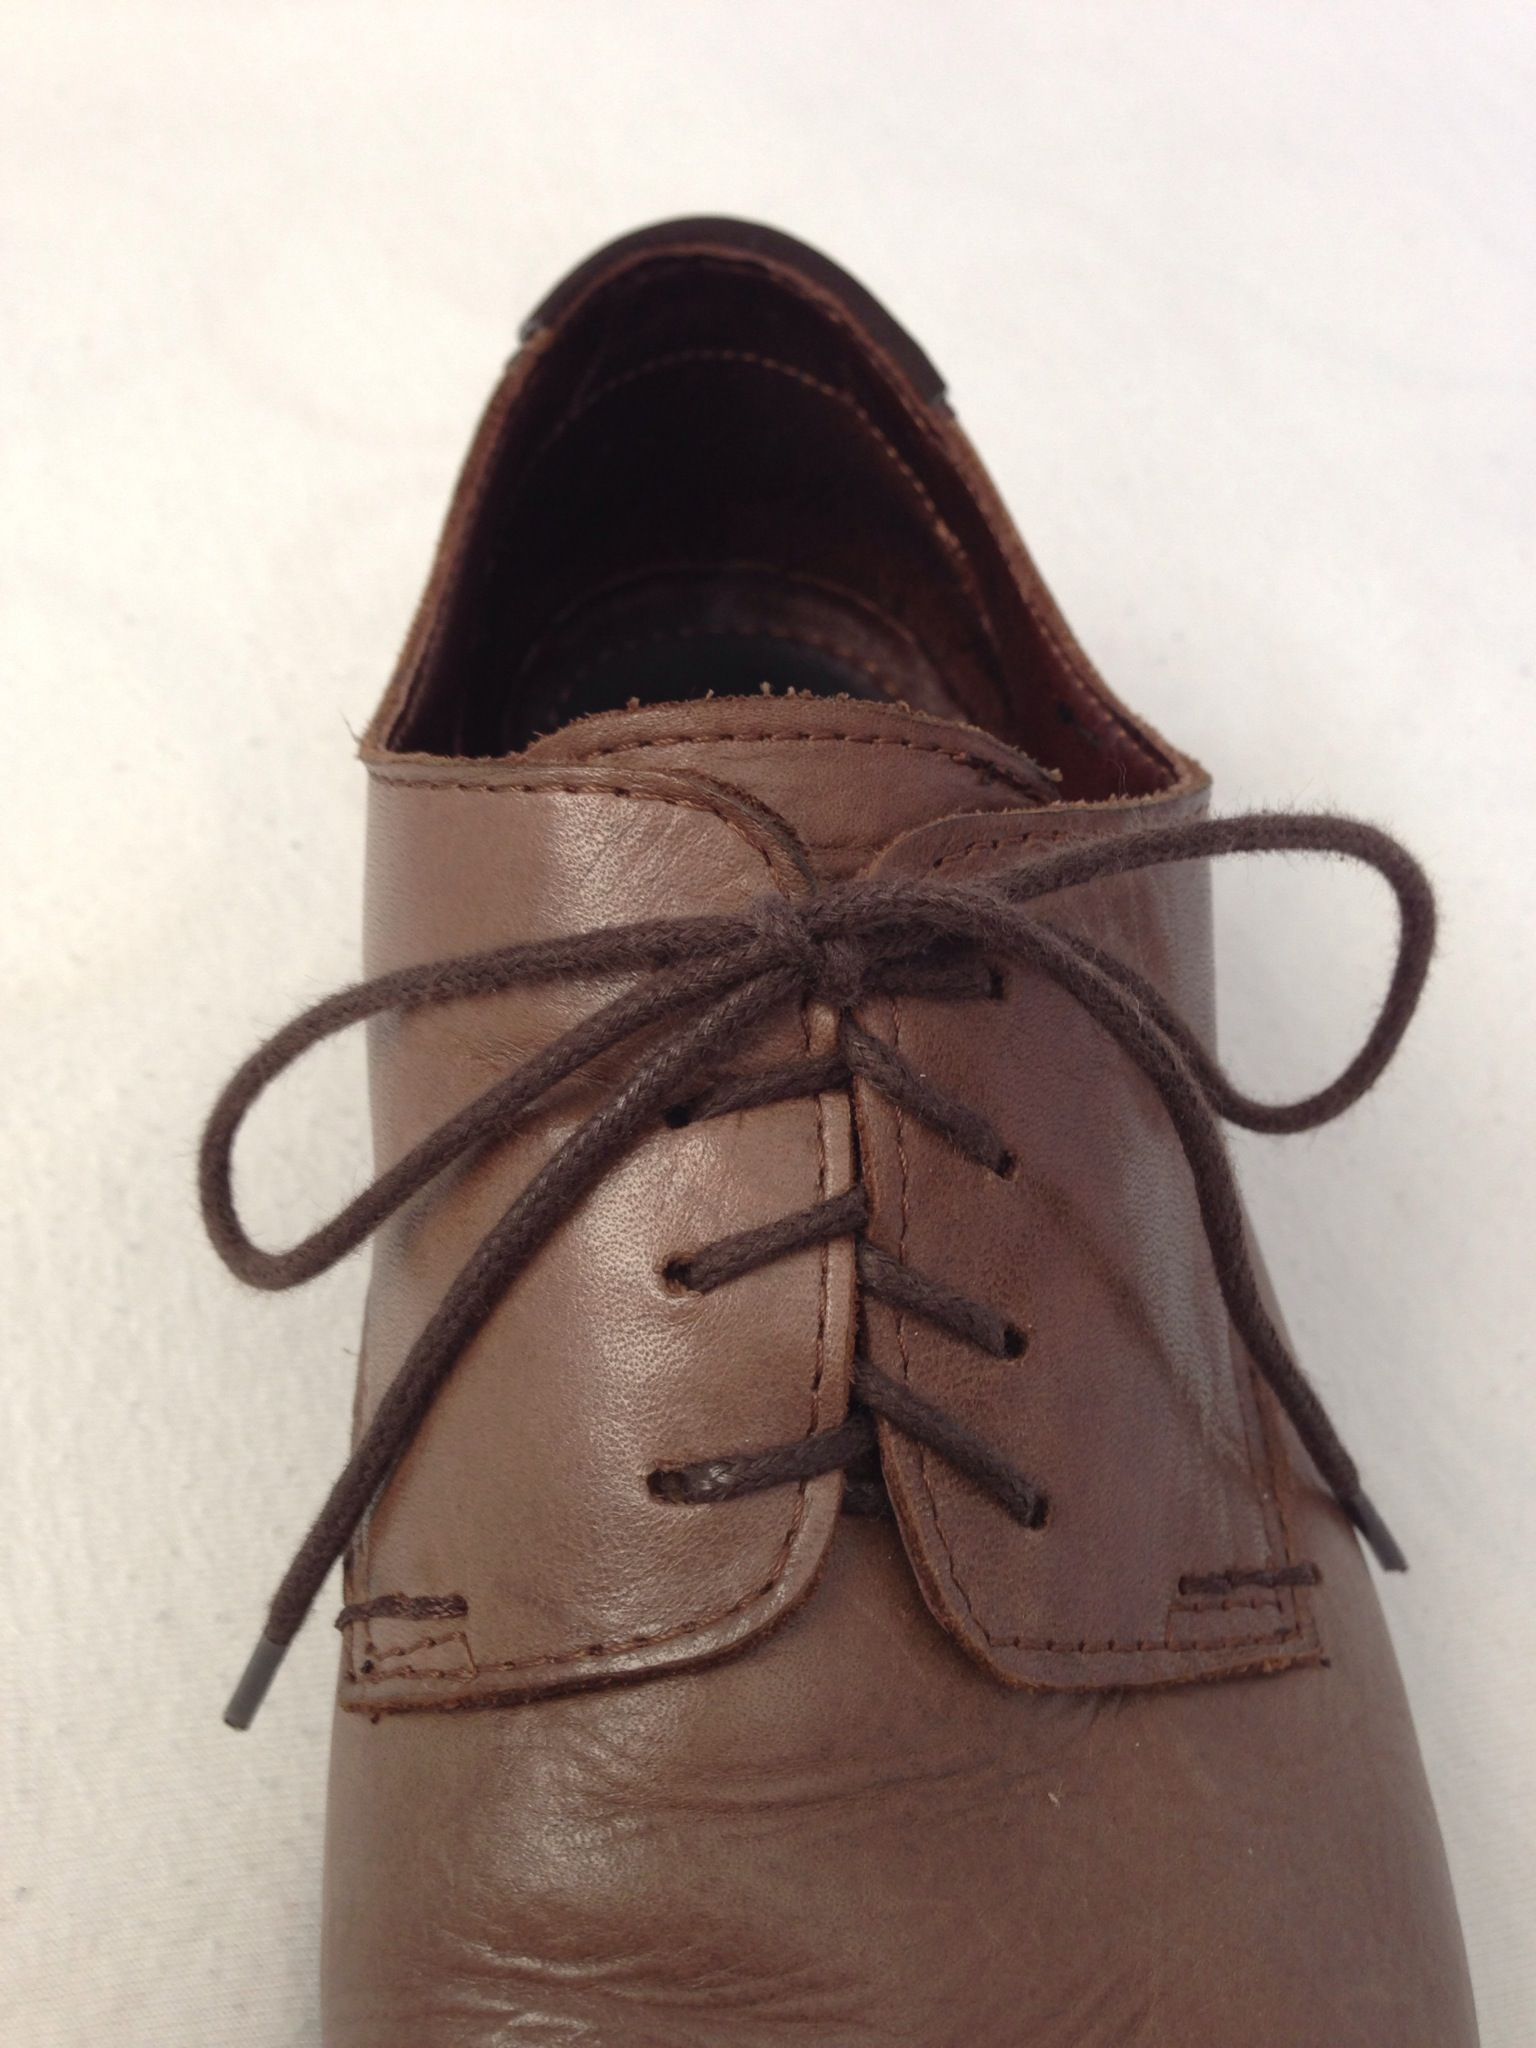 How To Tie Your Shoes So They Never Come Untied